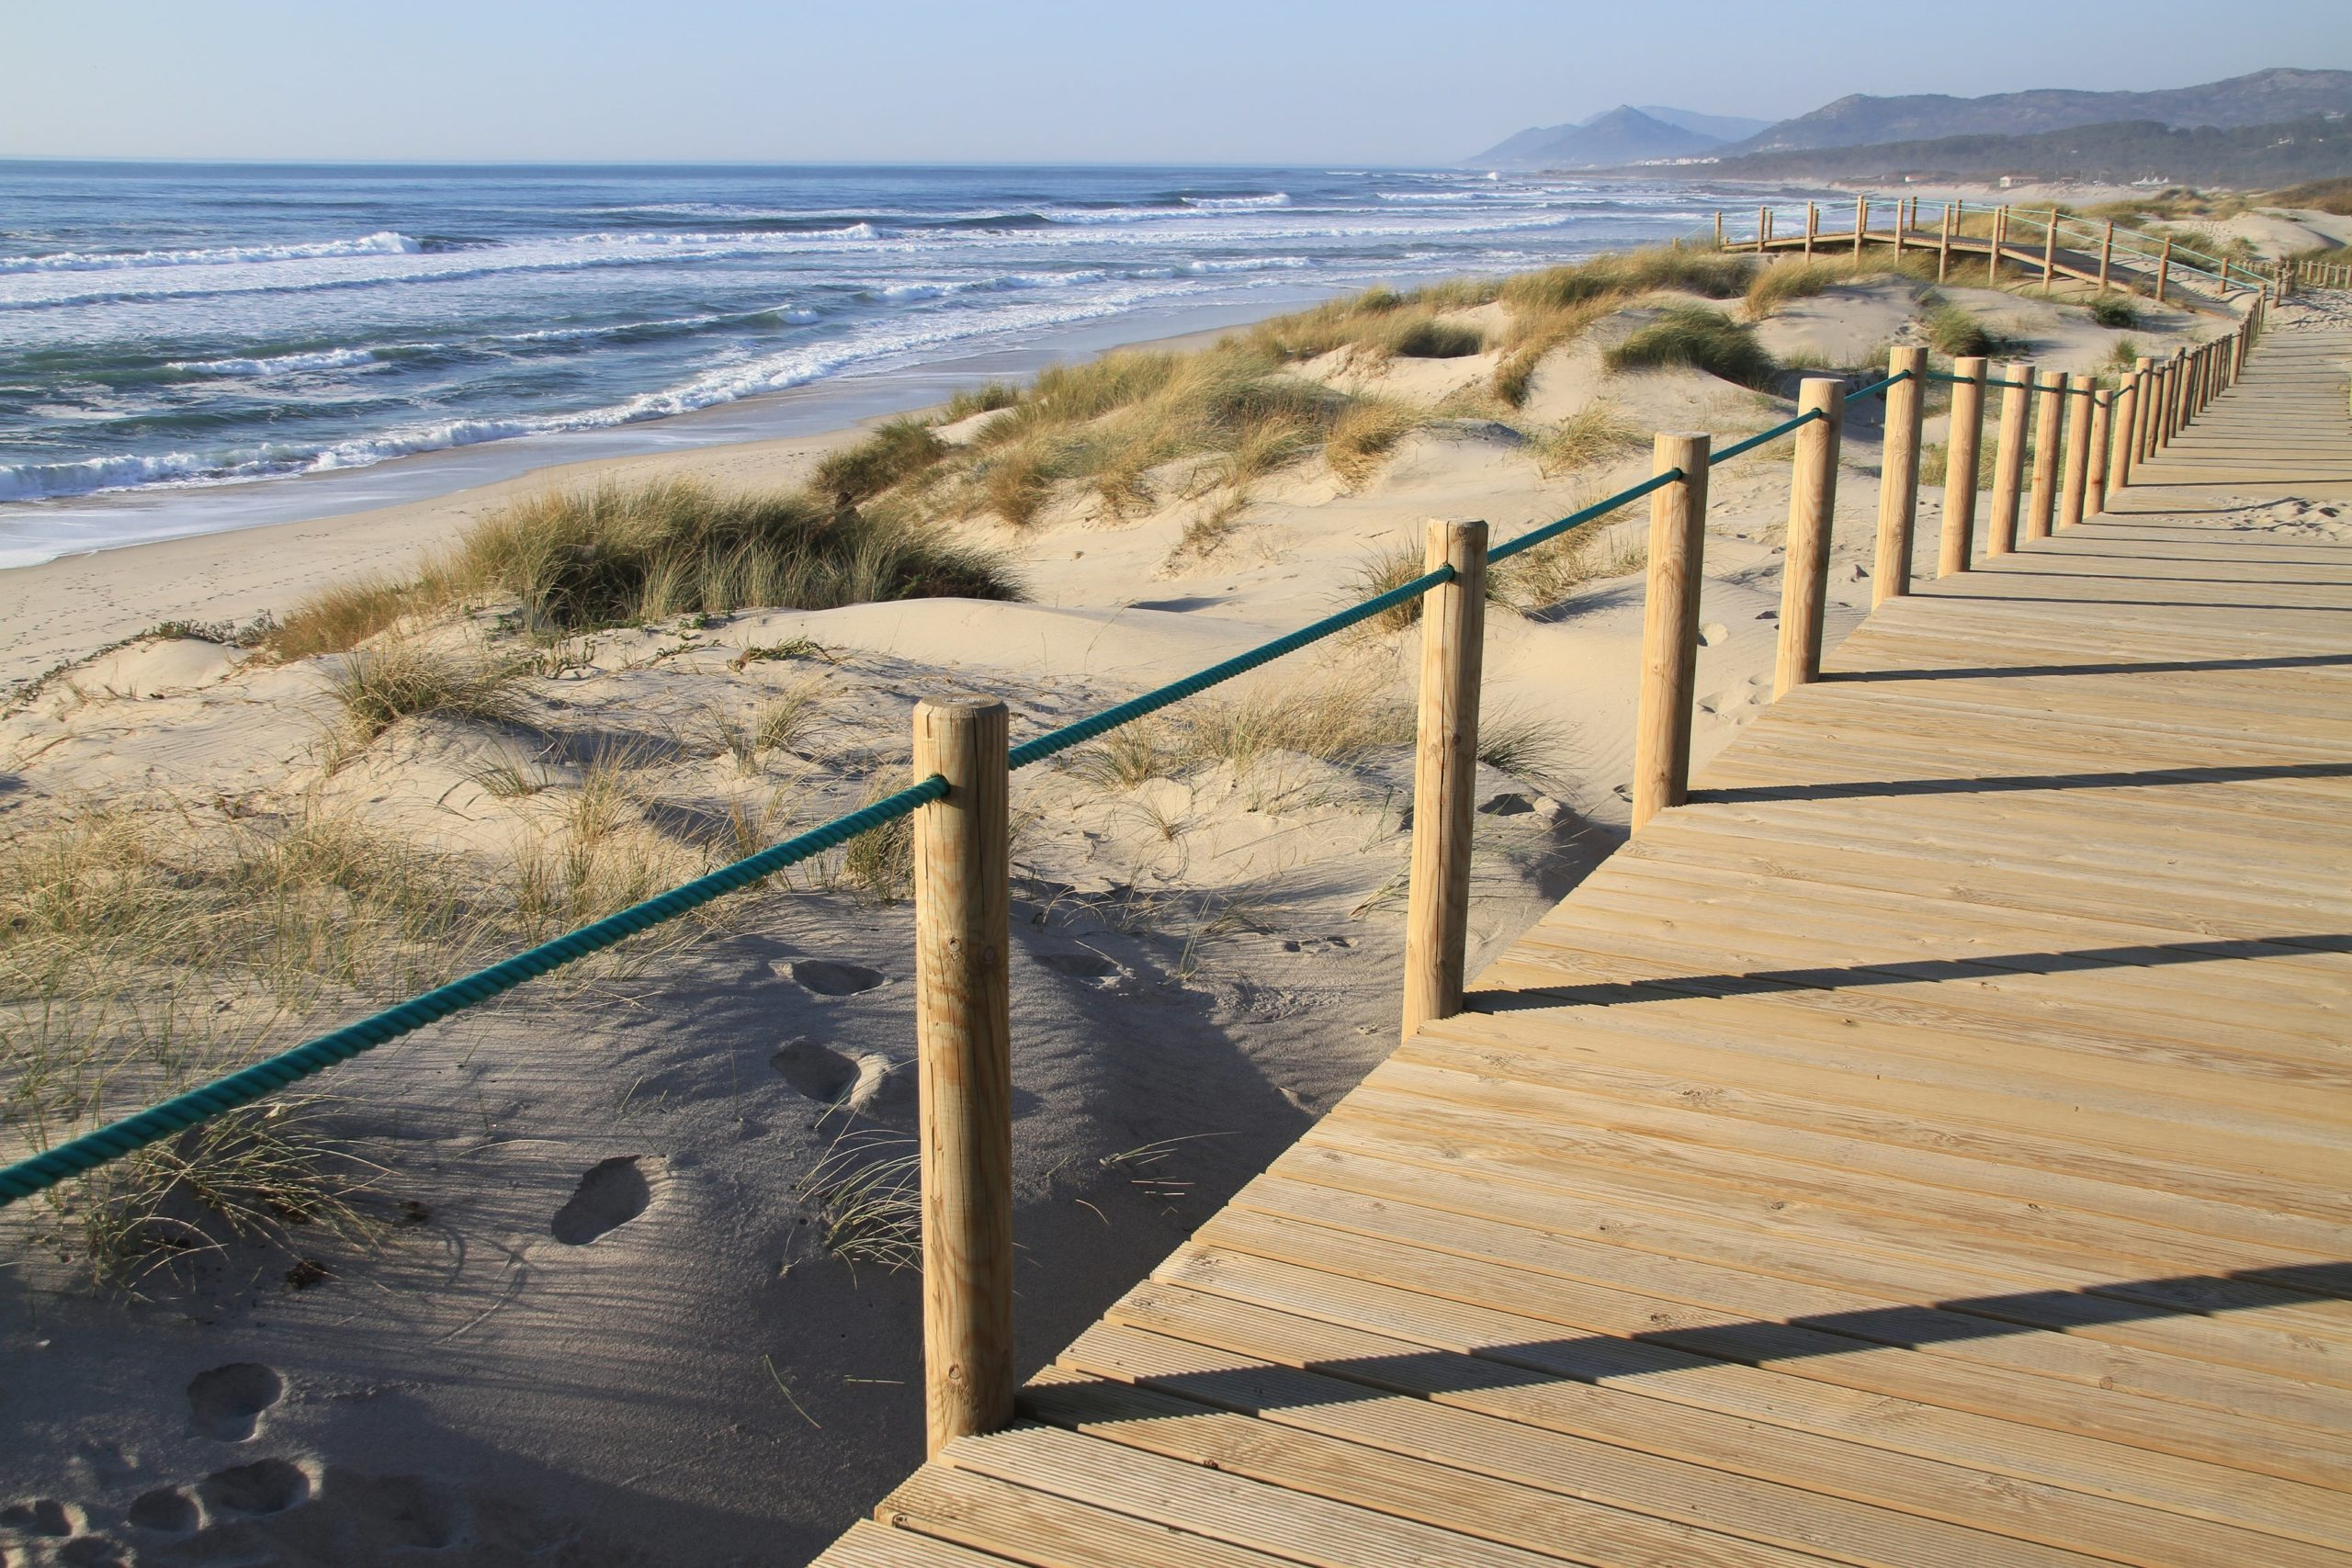 Best places to surf in Europe - Praia da Arda Portugal